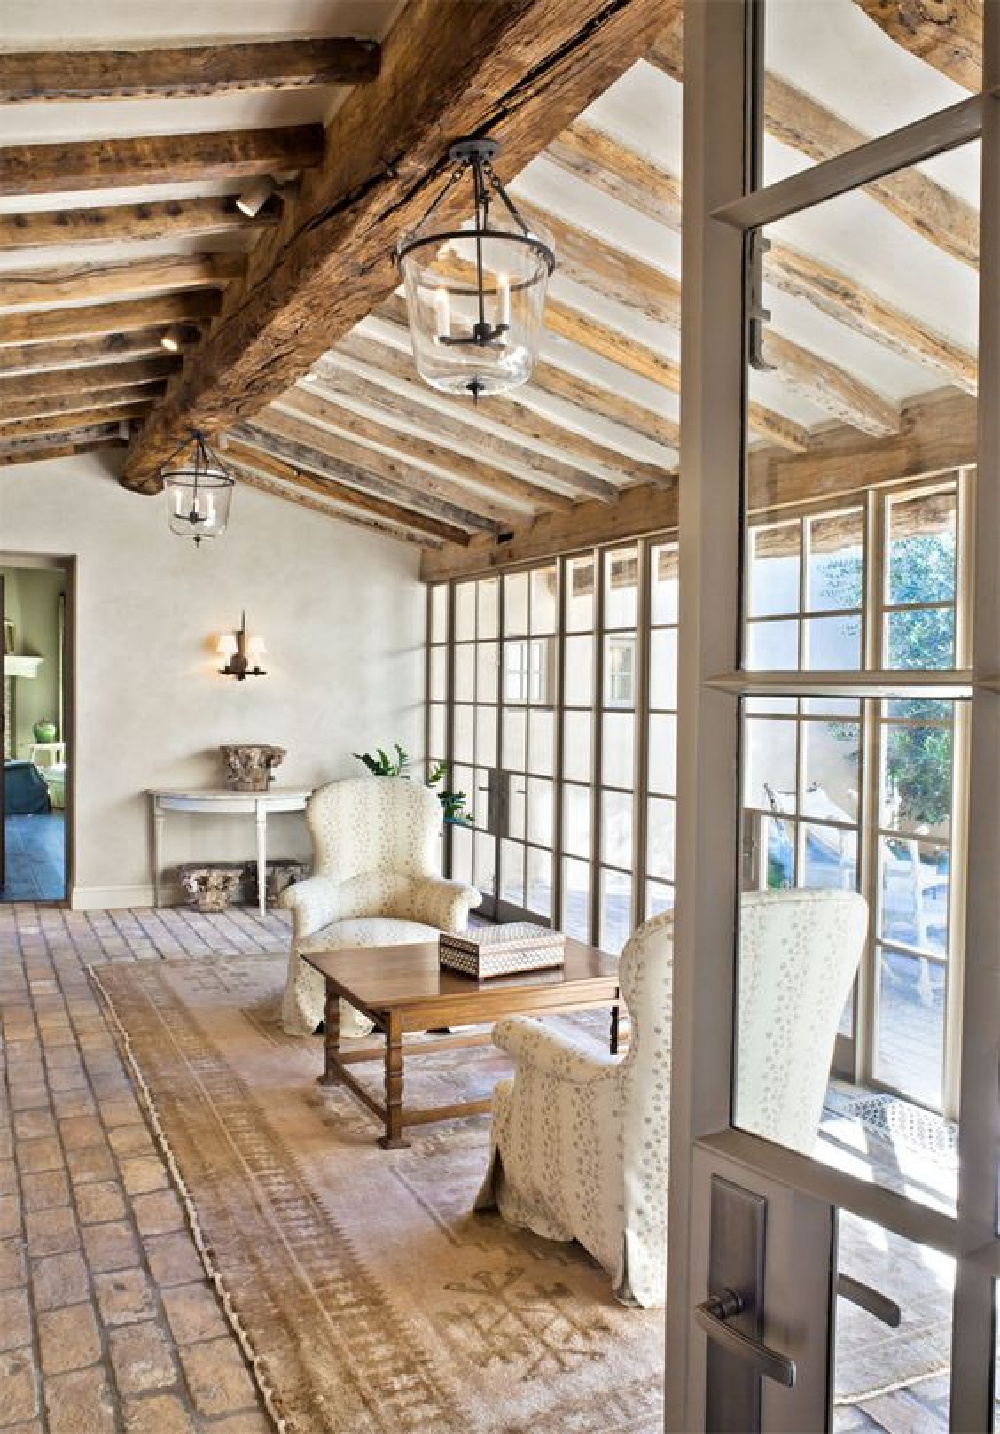 Rustic aged wood ceiling beams, brick flooring and walls of glass in a masterfully designed European country home - Oz Architects.